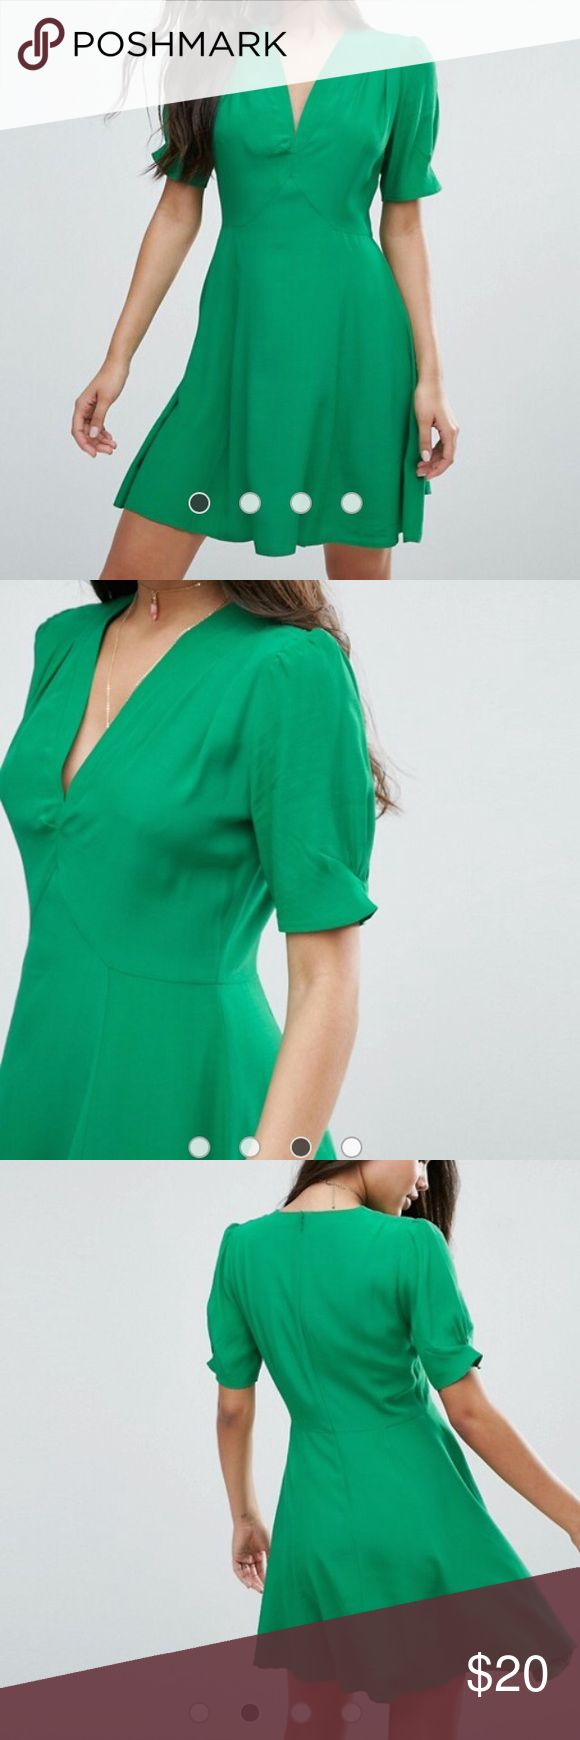 ASOS 40s green tea dress Never worn green tea dress! Bought the wrong size and never returned ASOS Dresses Mini